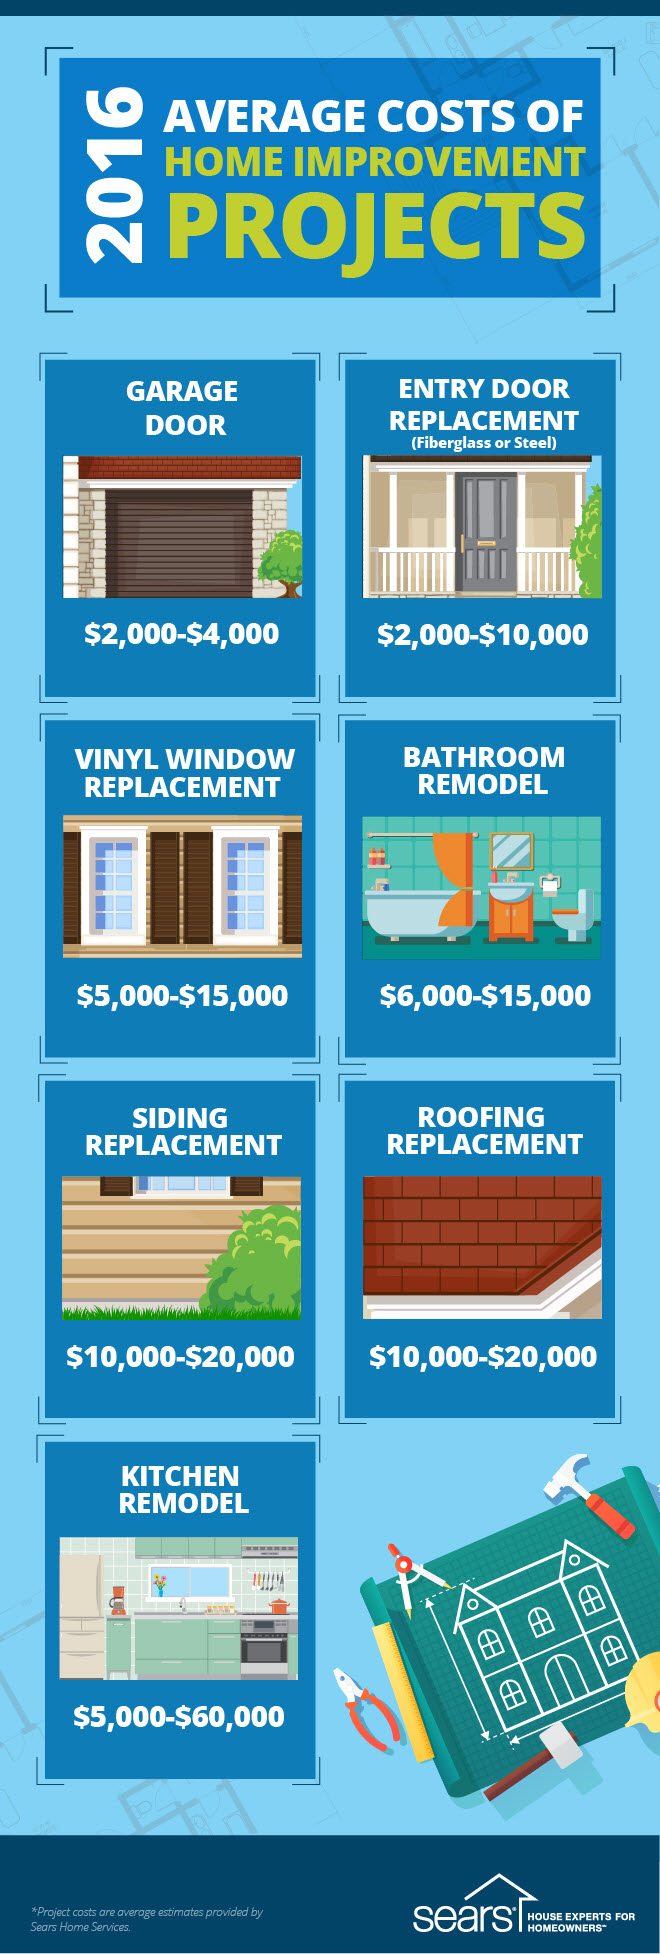 2016 Average Costs of Home Improvement Projects